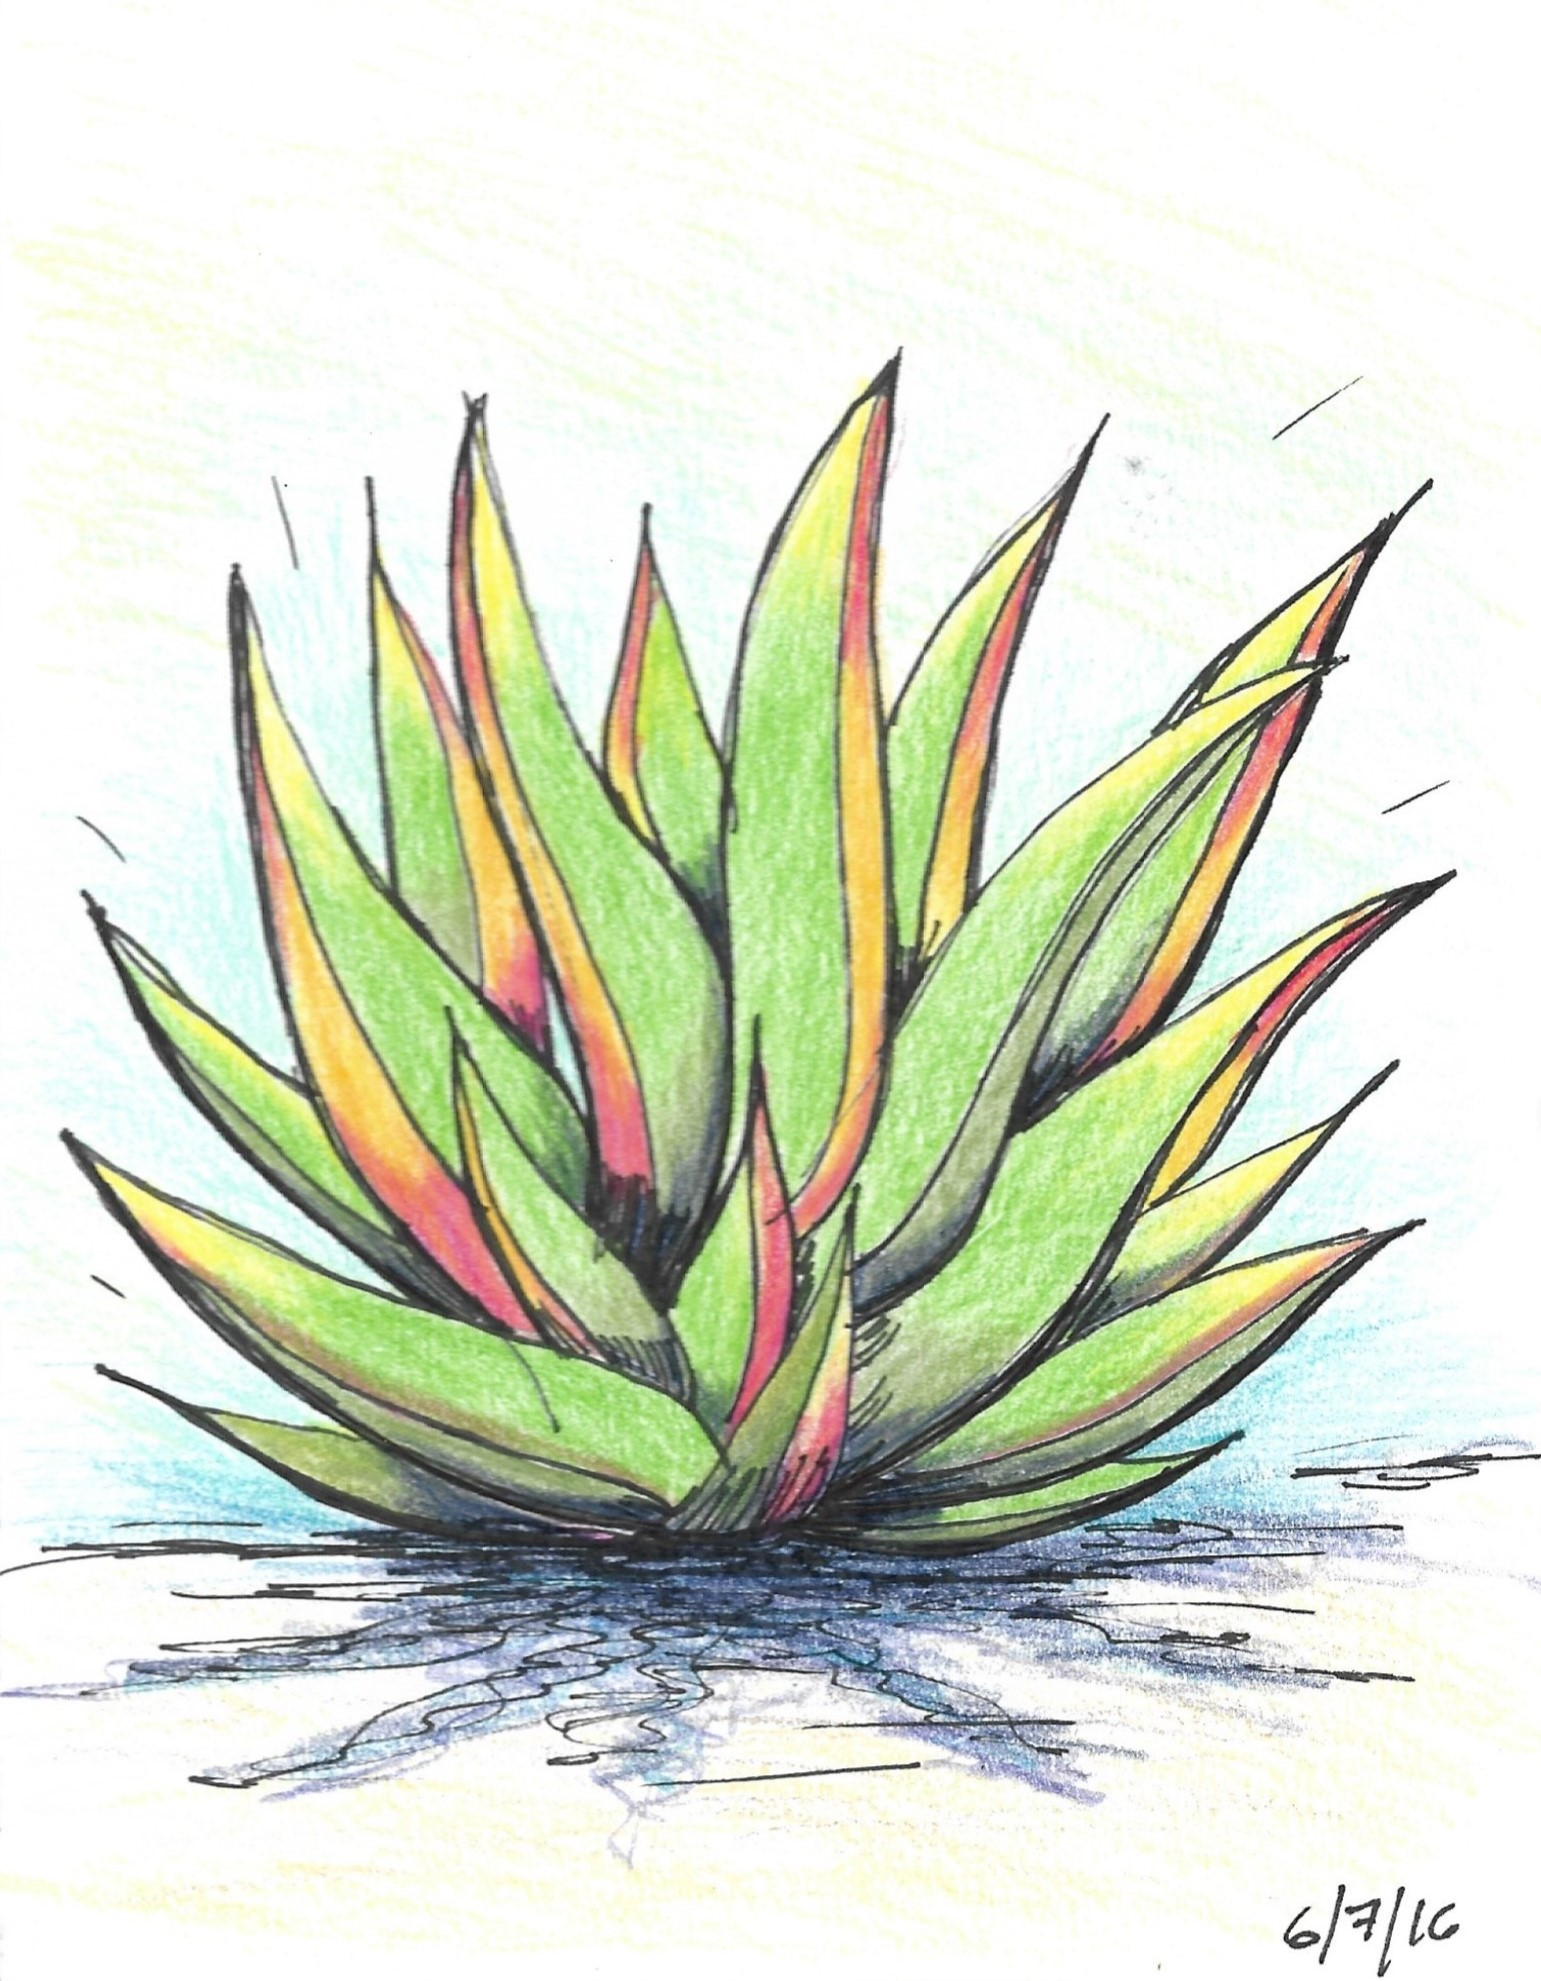 Blue Agave, Mexico